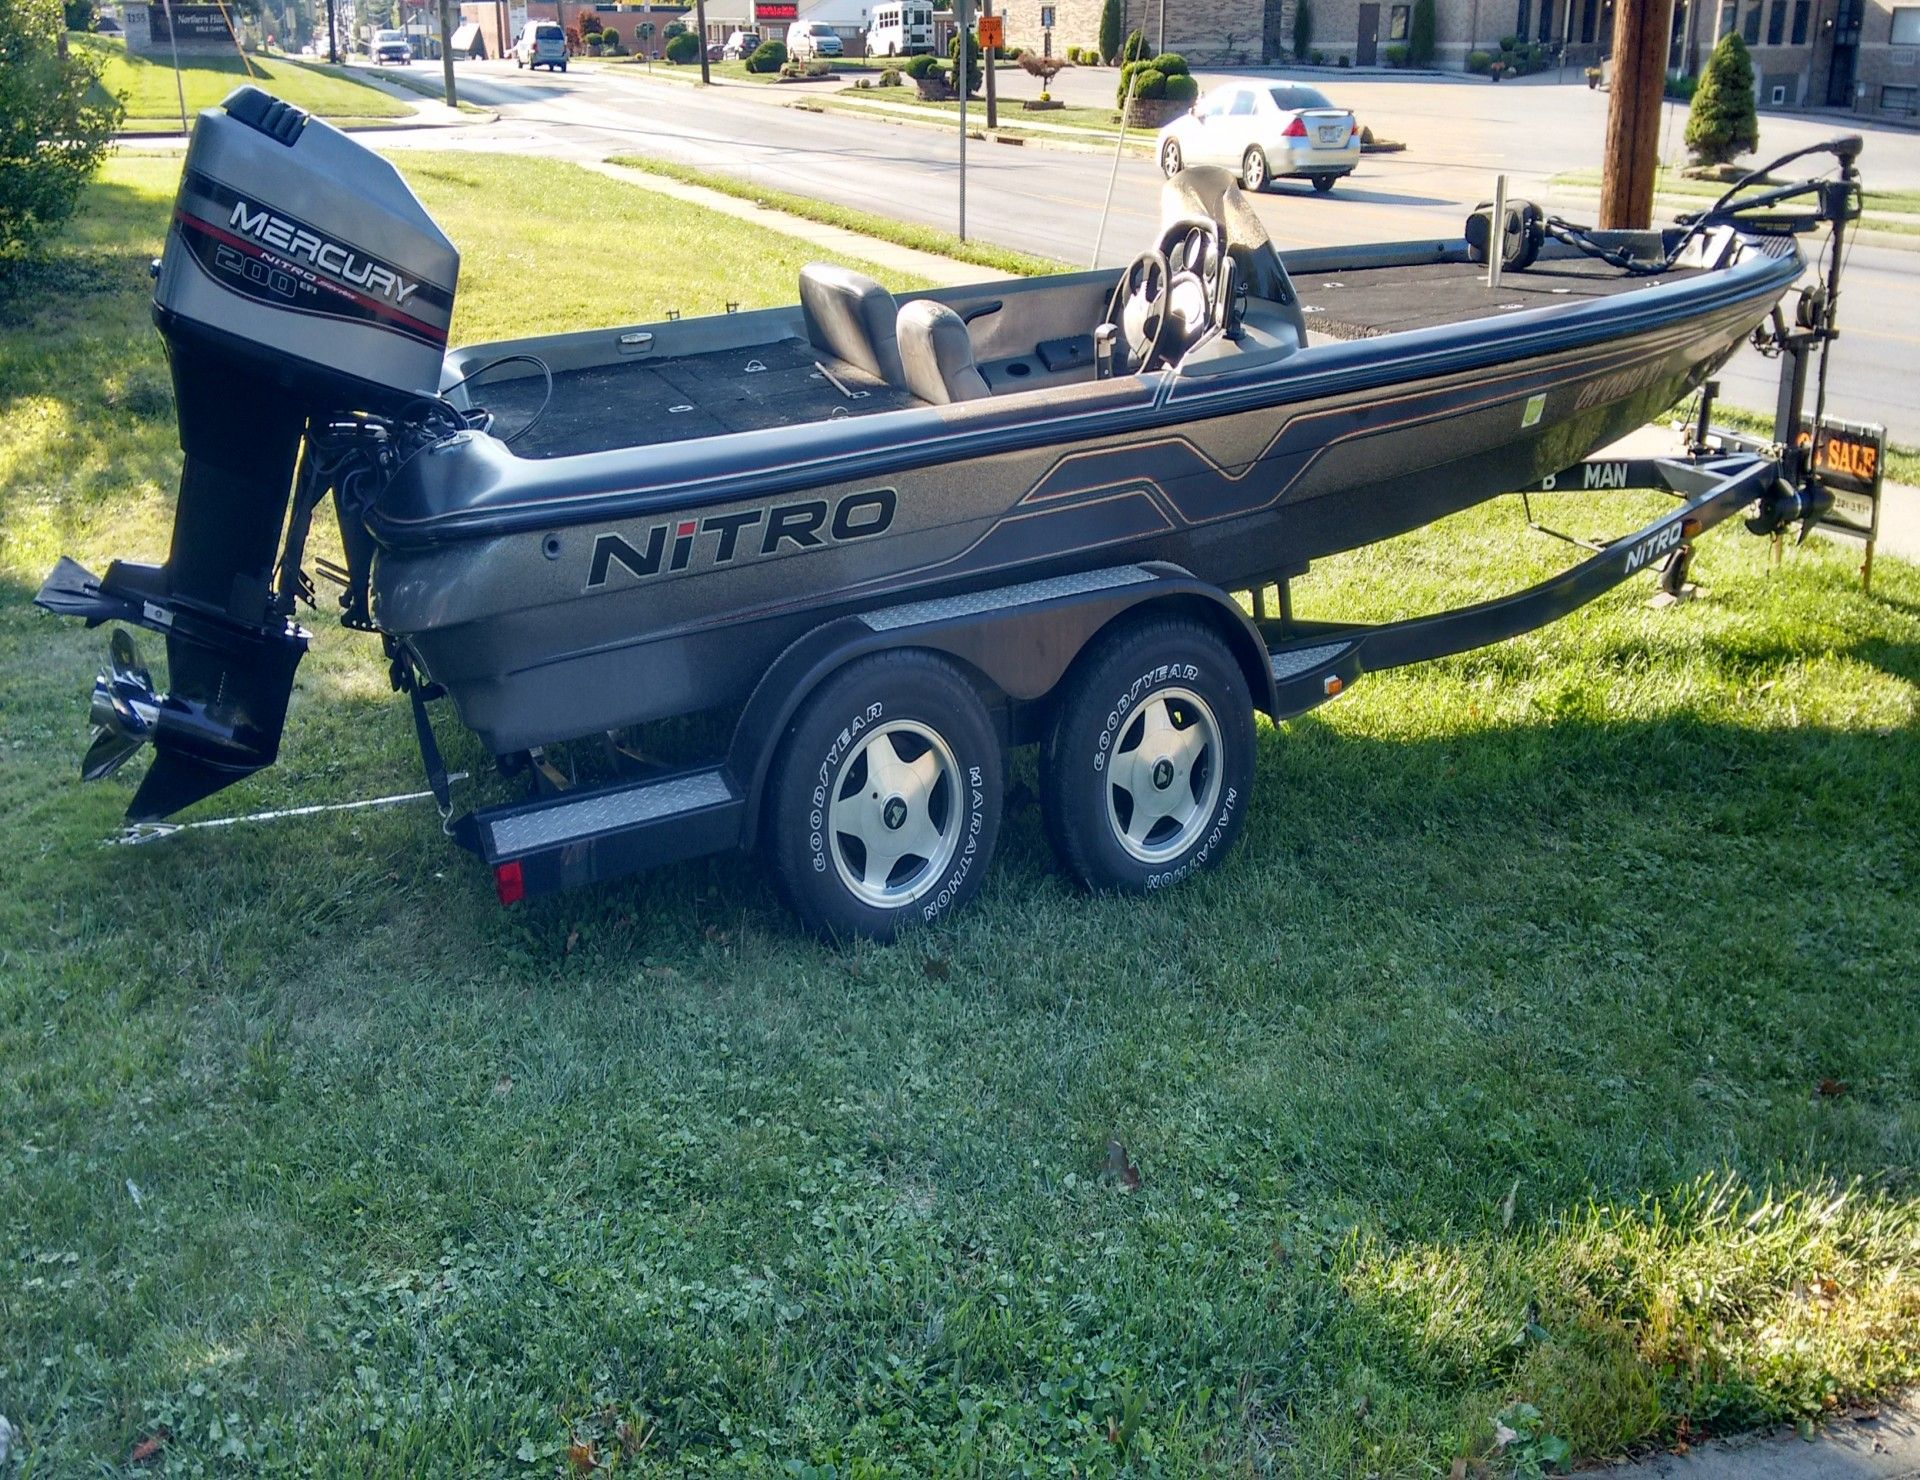 hight resolution of  200 hp mercury efi outboard 2 stroke automatic oil mix 1996 twin axle trailer with swing away tongue surge brakes engine recently serviced with